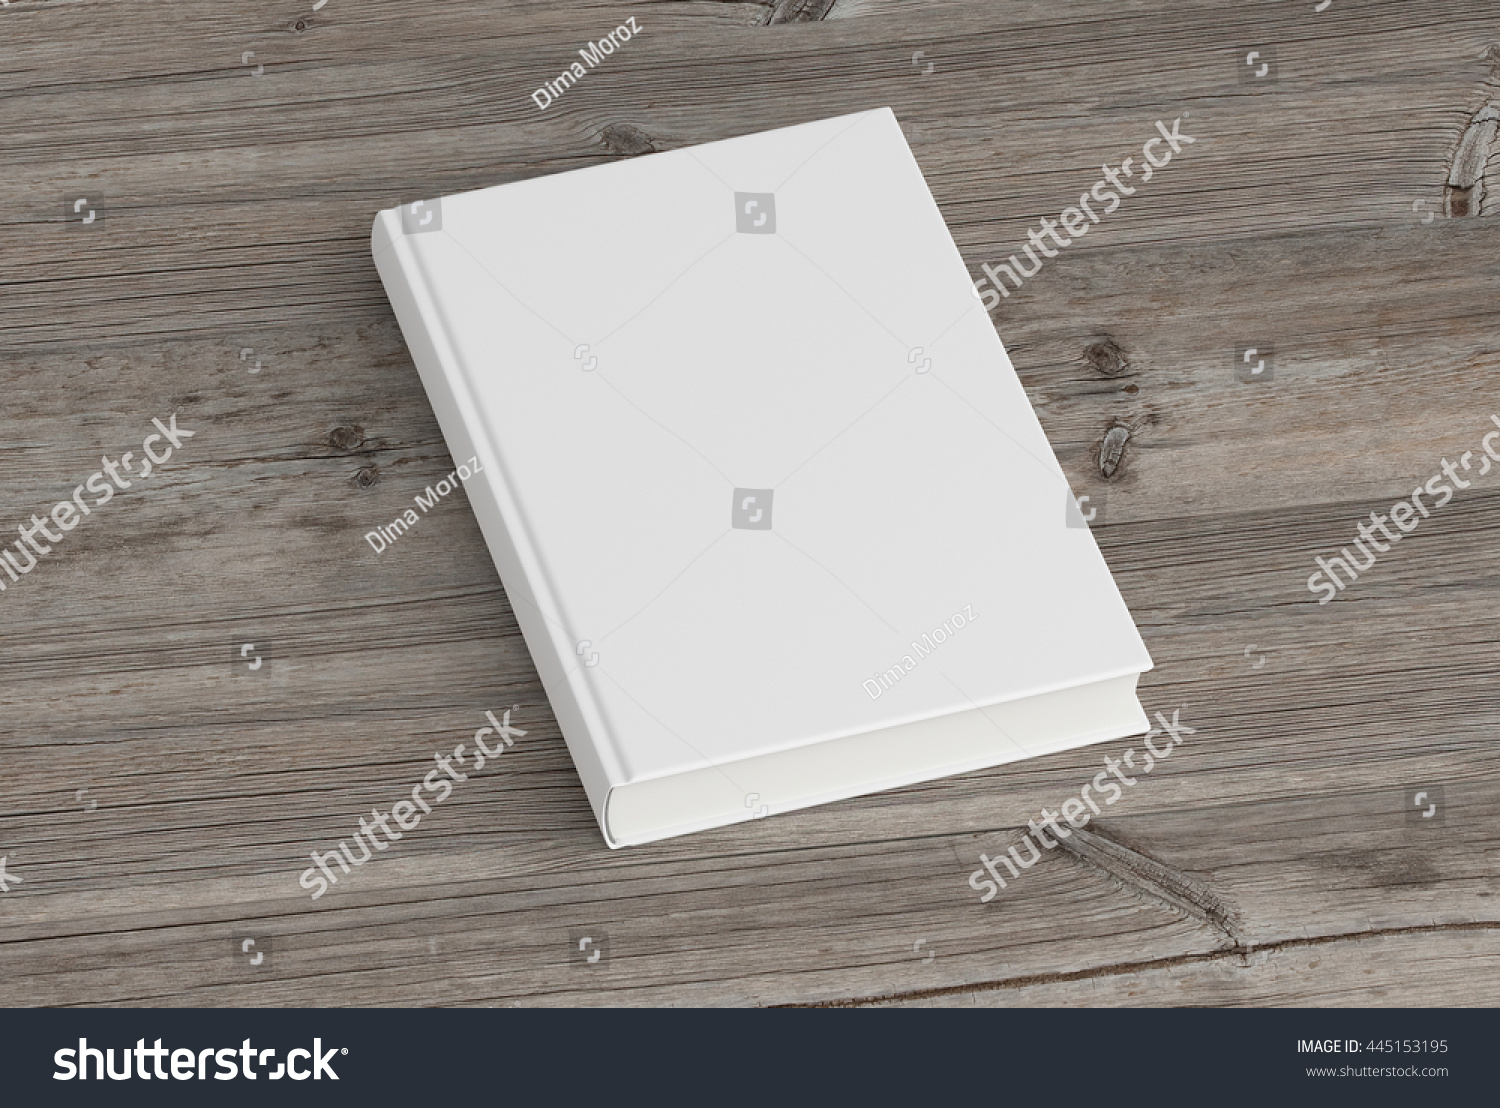 Blank Book Cover Background : Blank book cover on wood background stock illustration